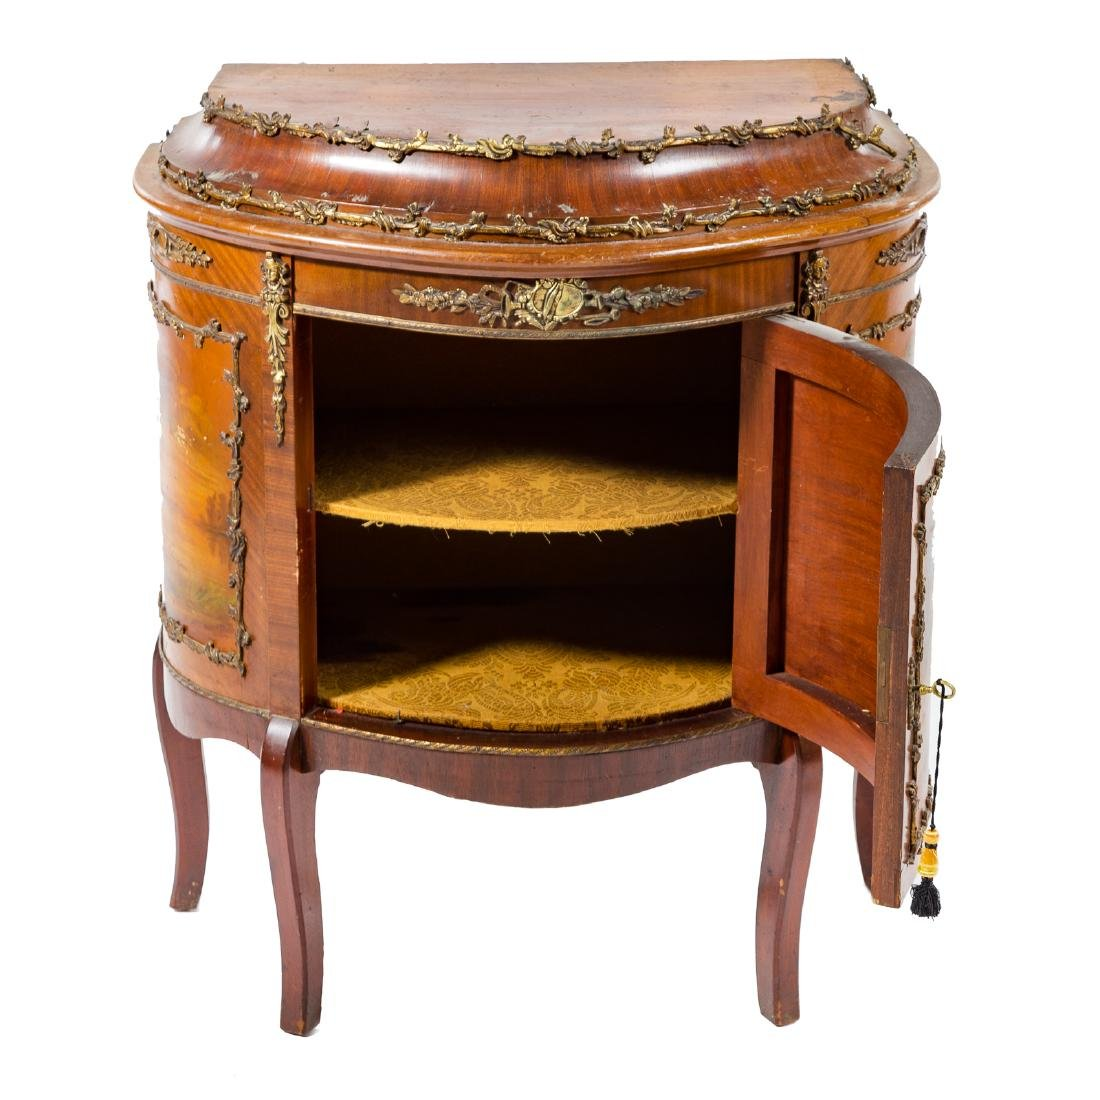 Louis XV style kingwood brass-mounted commode - 4